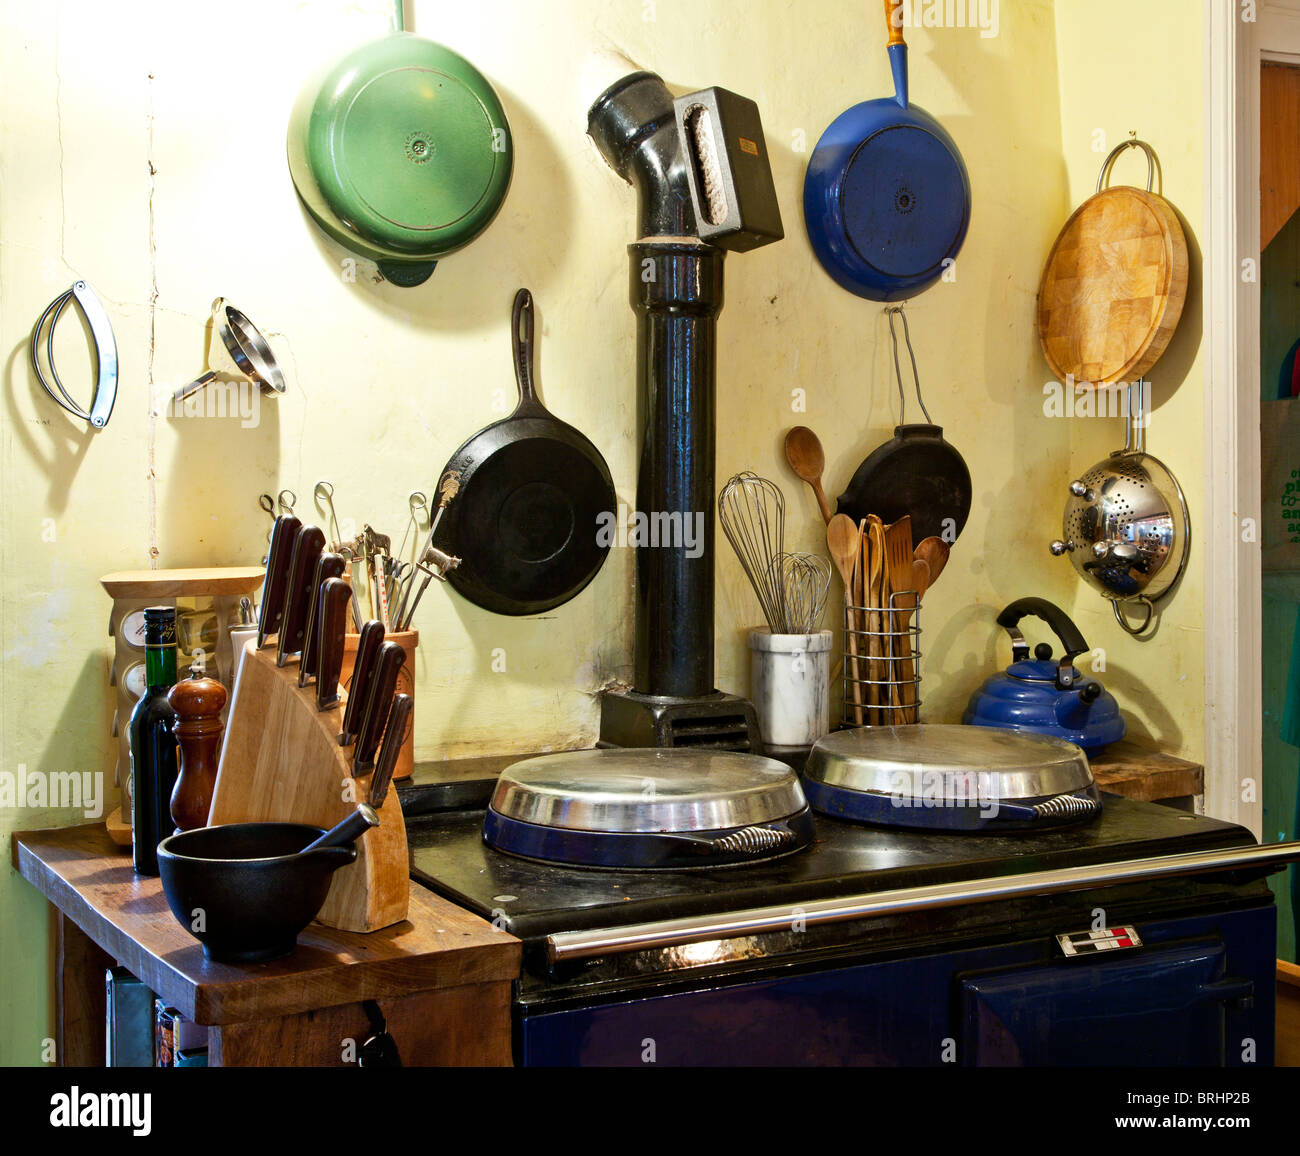 A corner of an English country style kitchen with an Aga or range and pots and pans and cooking utensils Stock Photo